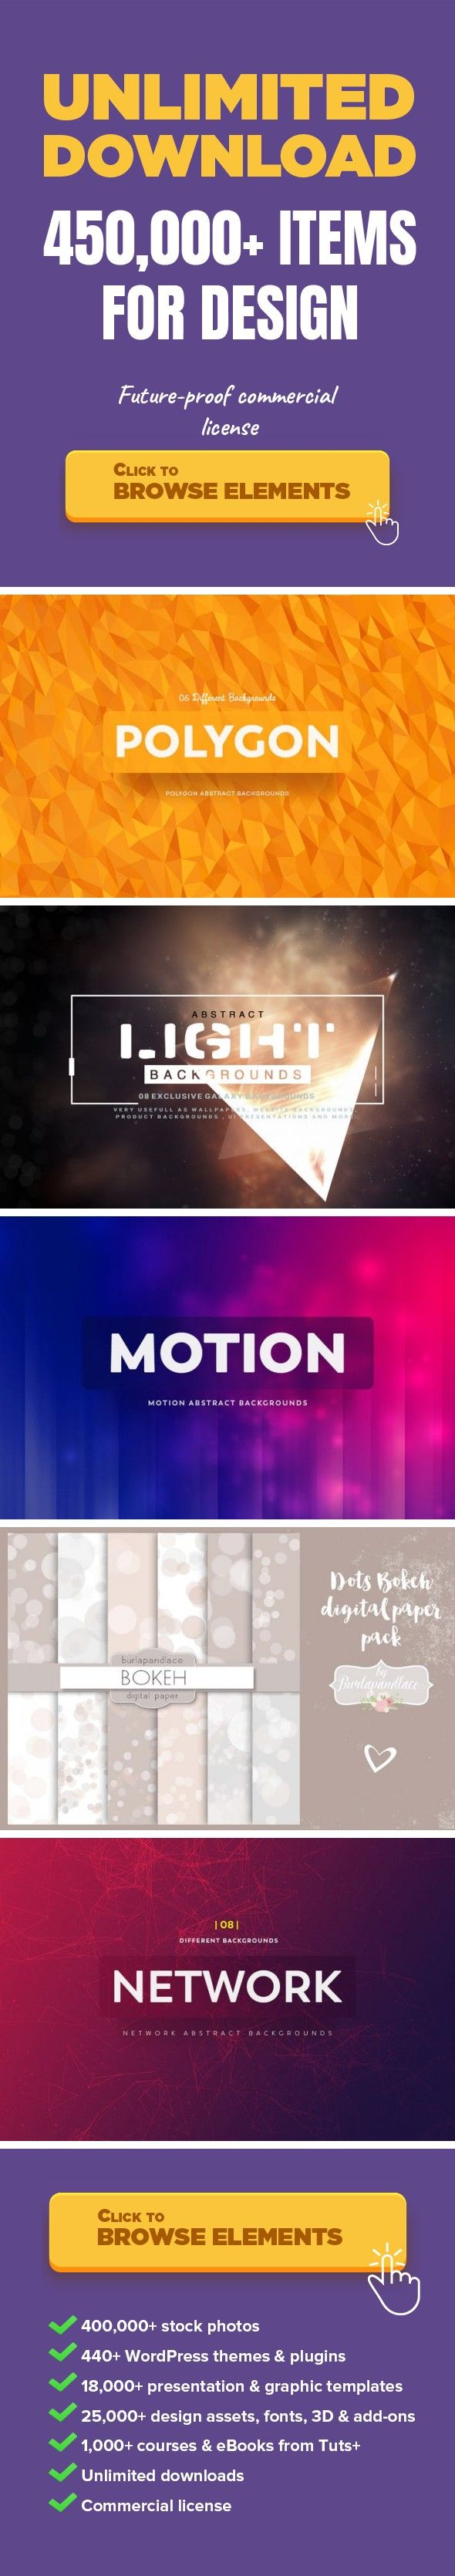 Polygon Abstract Backgrounds Graphics, Backgrounds, Textures ad, abstract, backgrounds, clean, elegan, modern, geometric, wallpaper, web, low, poly, tahiti, gold, orange, sorbus   Polygon  Abstract BackgroundsGreat  to showcase your  **products, presentations, advertising, LOGOS , Banners ad, TV Ad, motion, ** or anything you wantDimensions: 5000 × 3750 PIX | @ 300 dpi RGBInfo:05 Different Backgro...